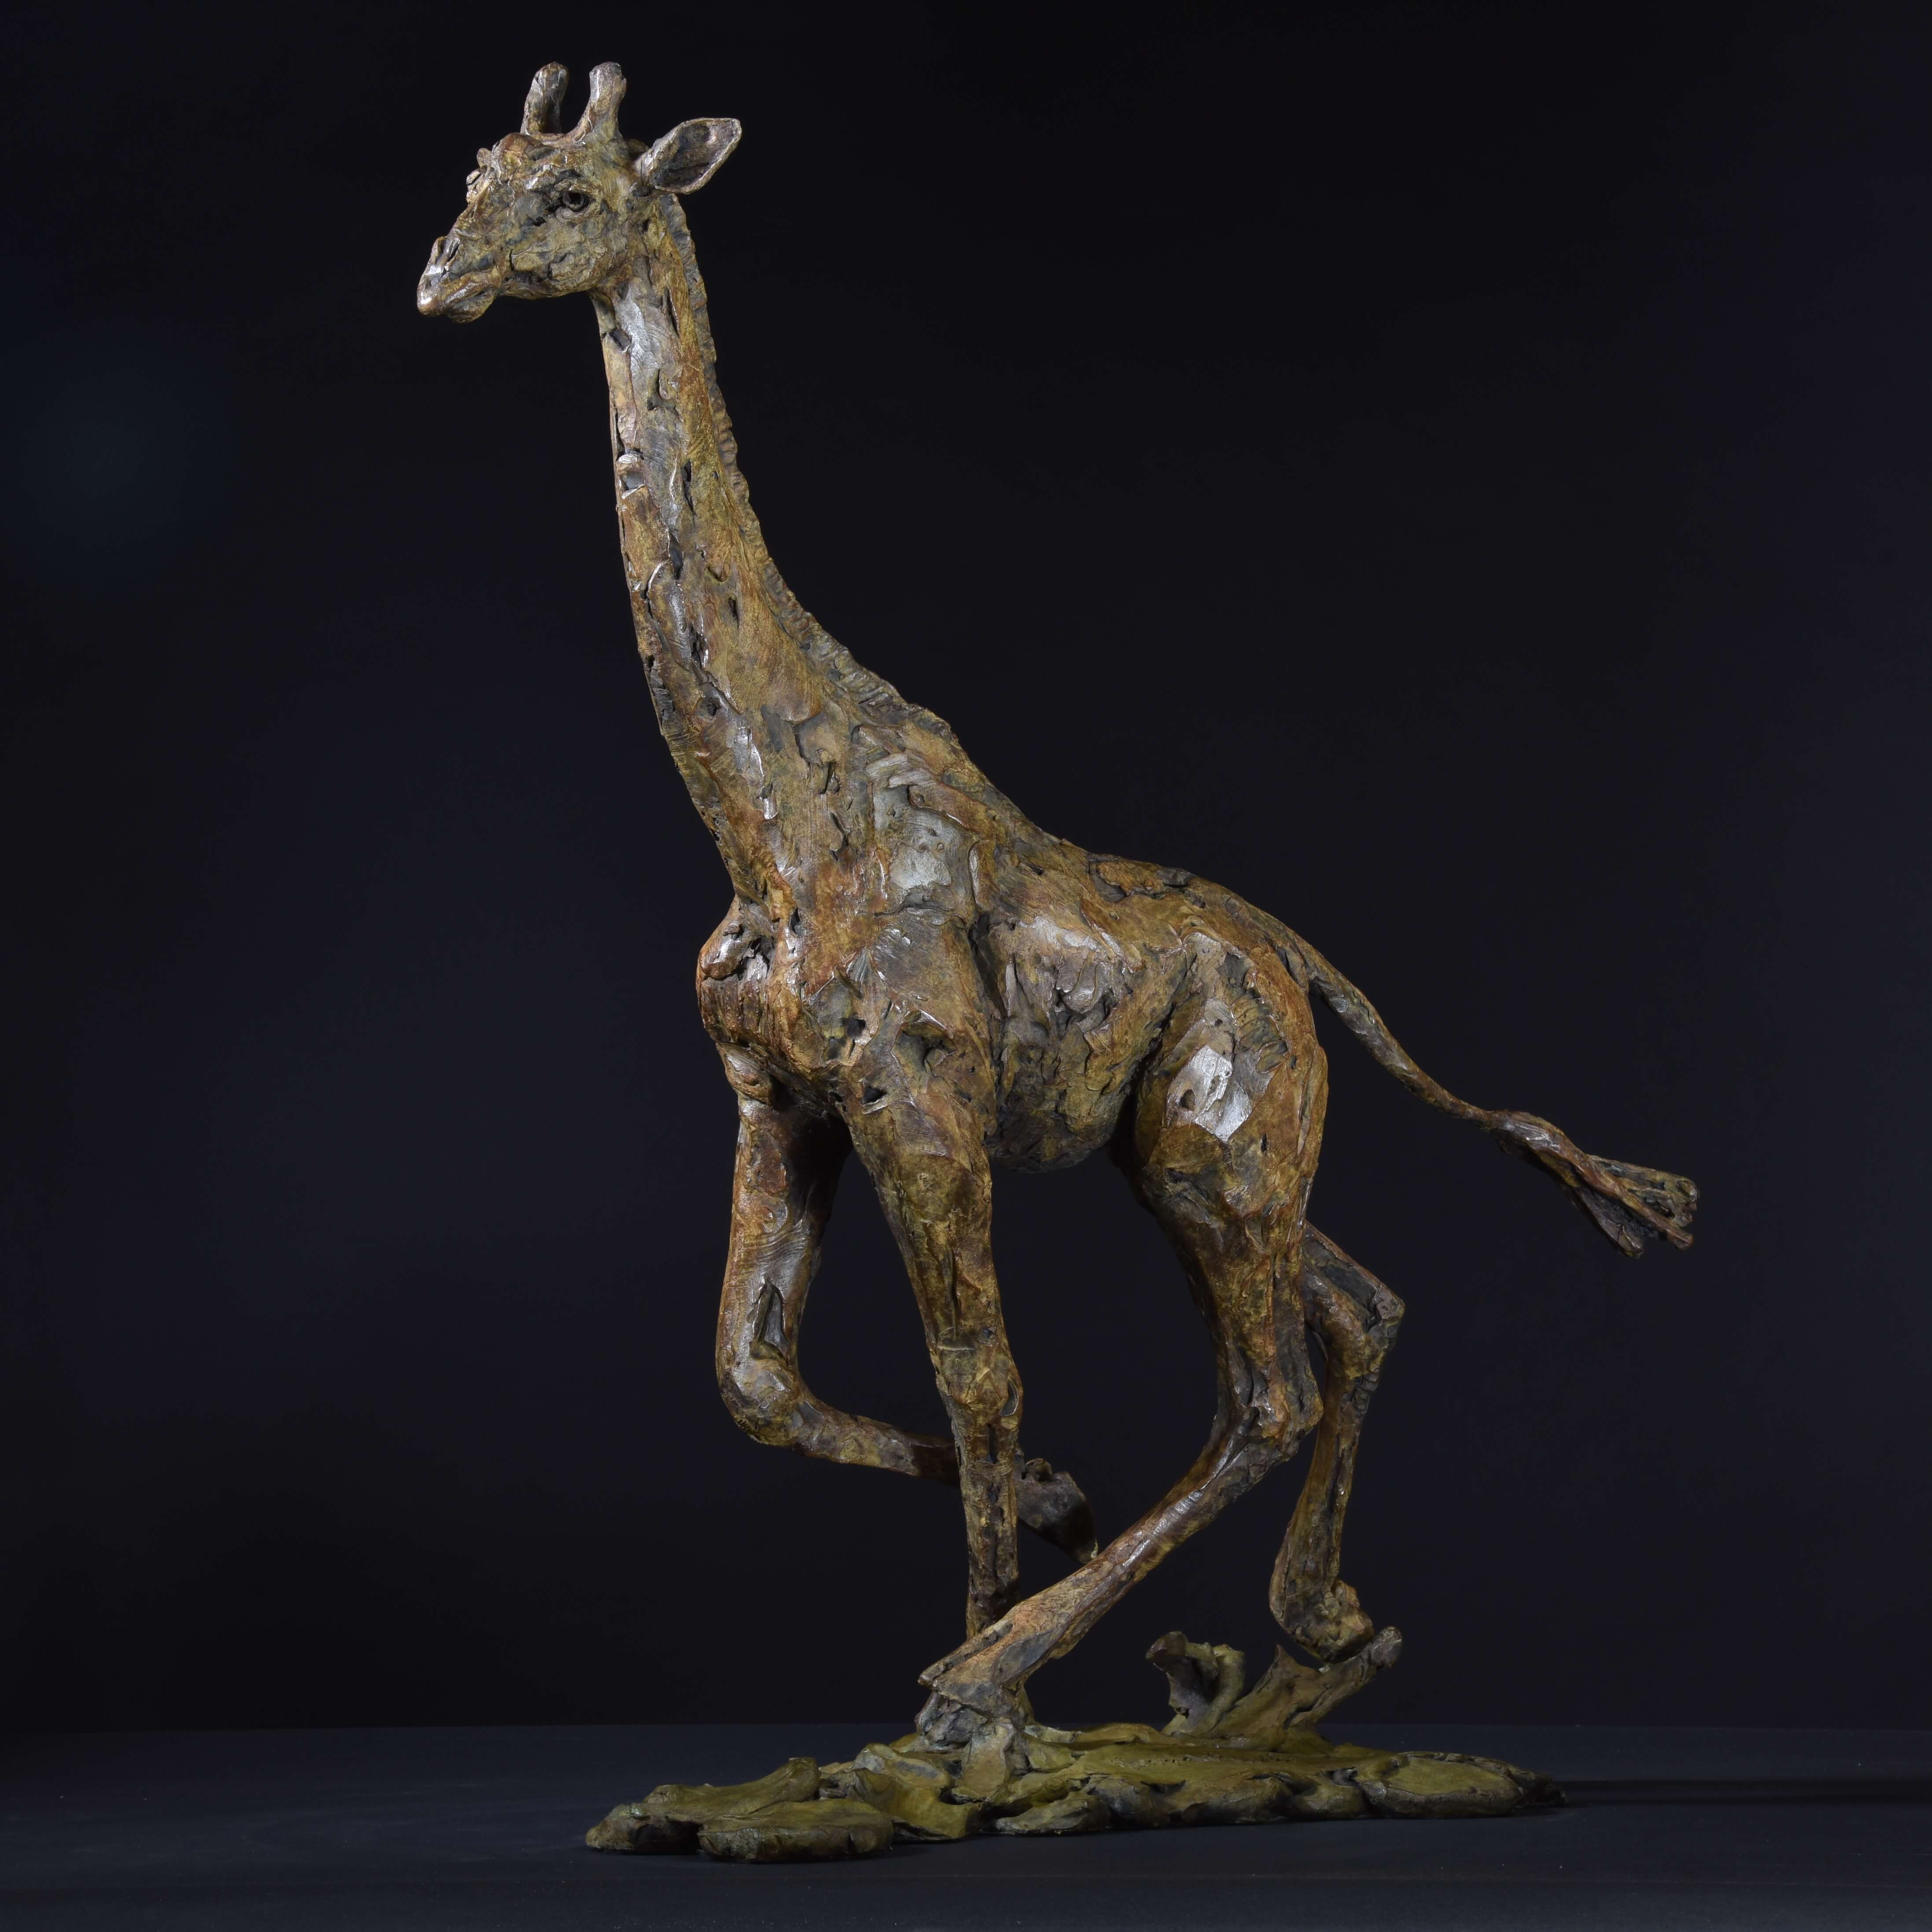 Giraffe Running by Hamish Mackie at Muse. The Sculpture Company